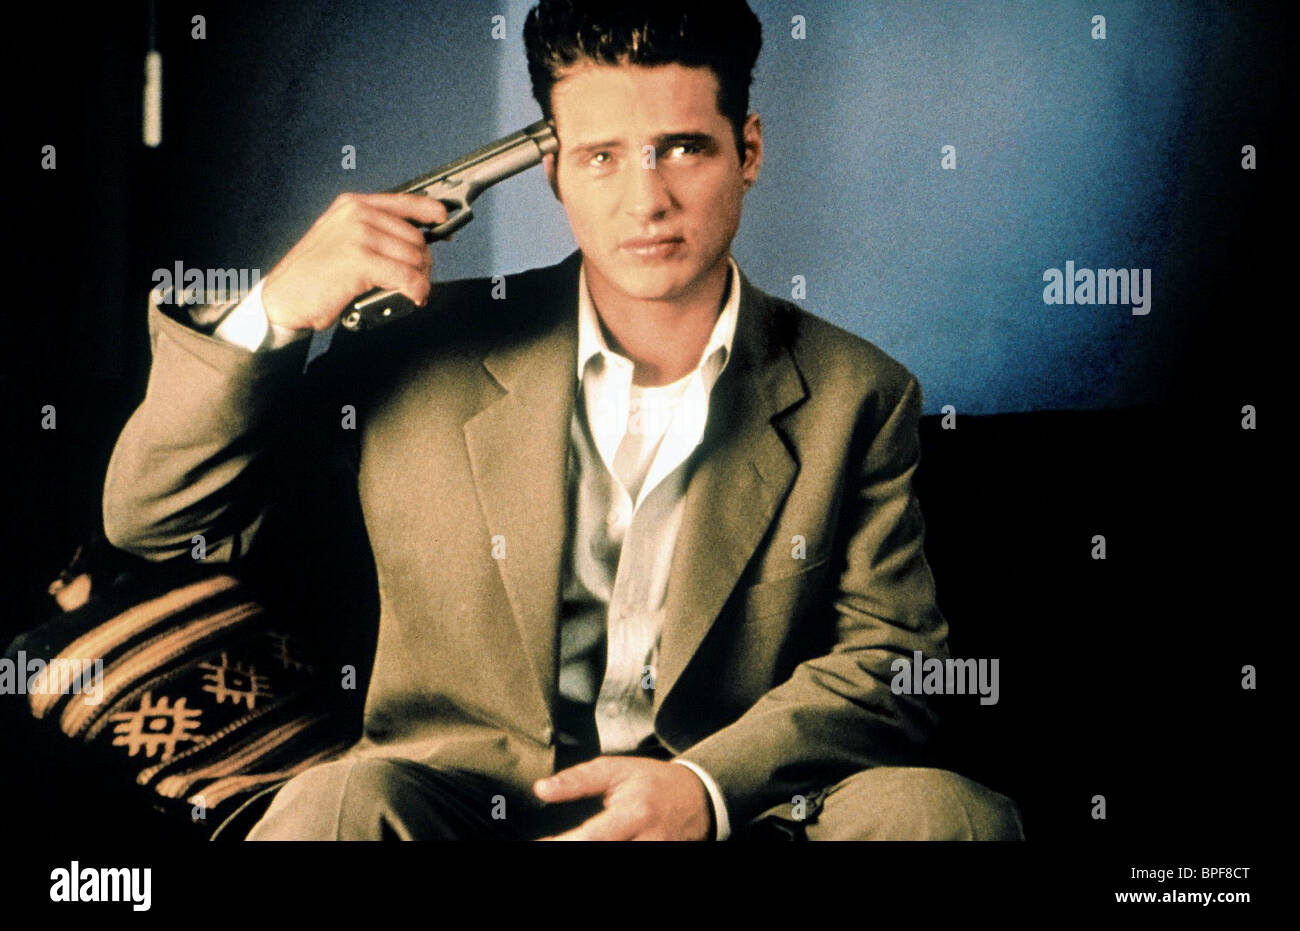 JASON PRIESTLY COLDBLOODED (1995) - Stock Image